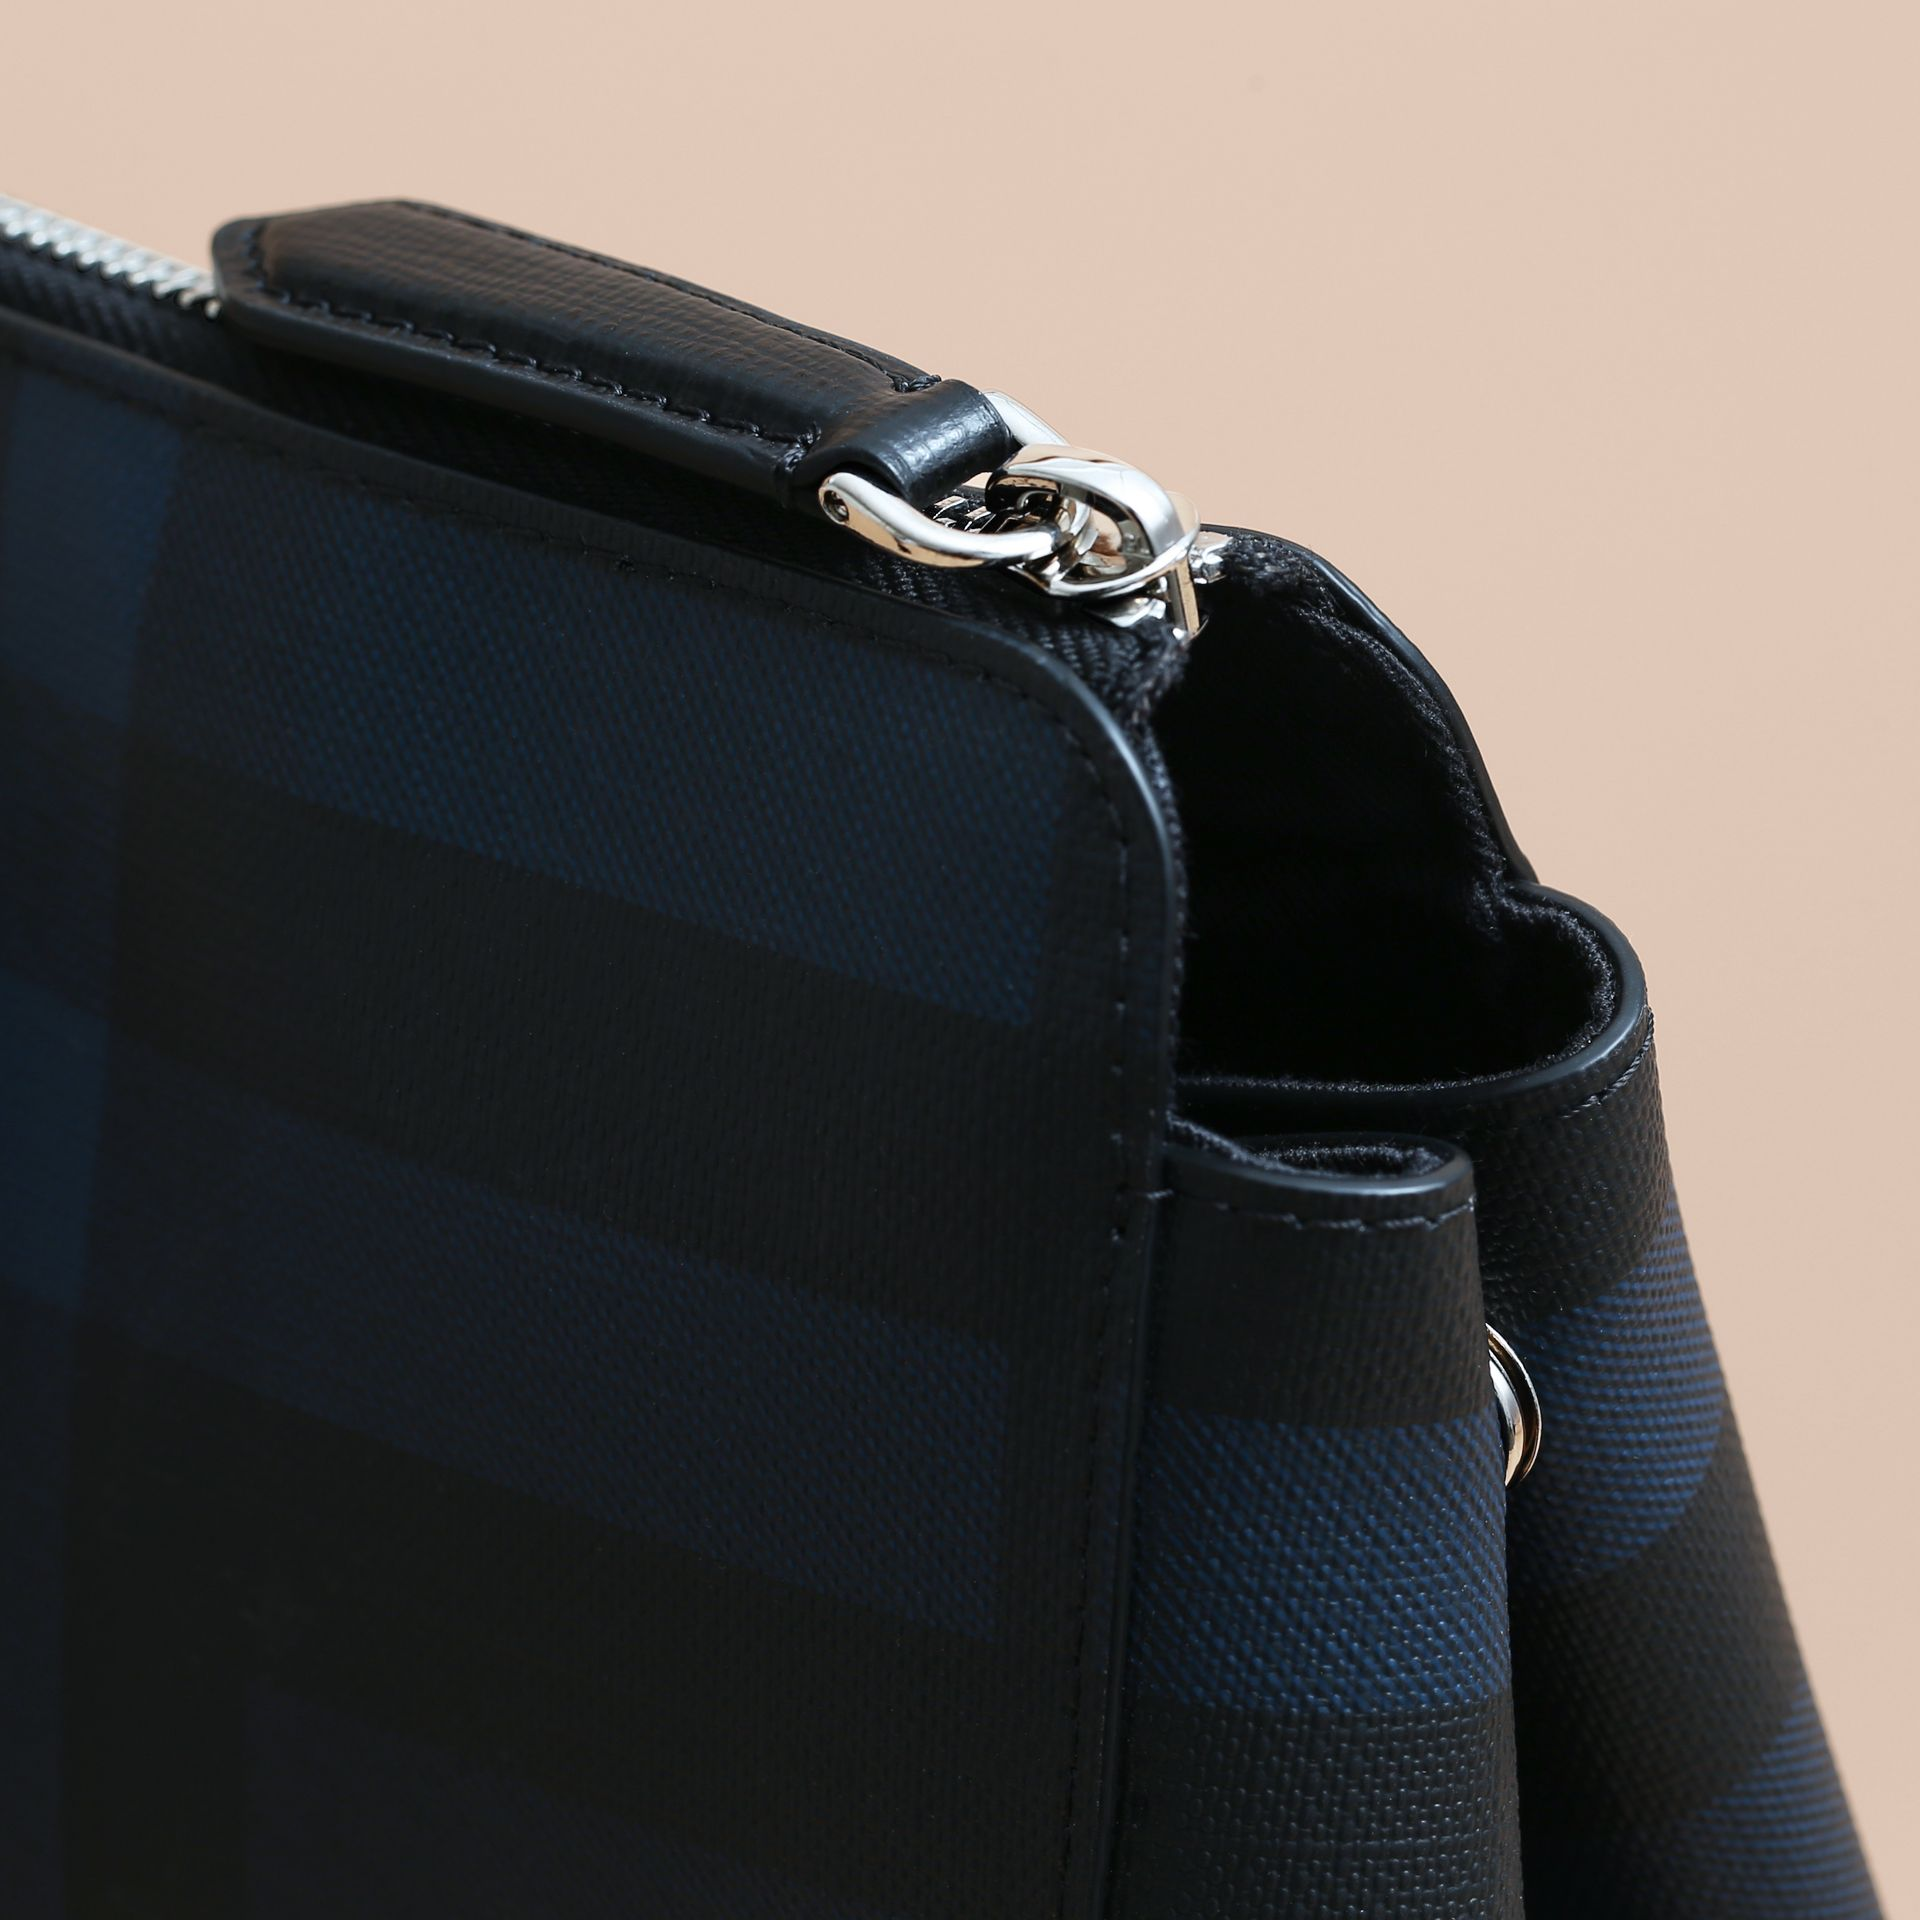 Large London Leather Briefcase in Dark Navy - Men | Burberry - gallery image 2